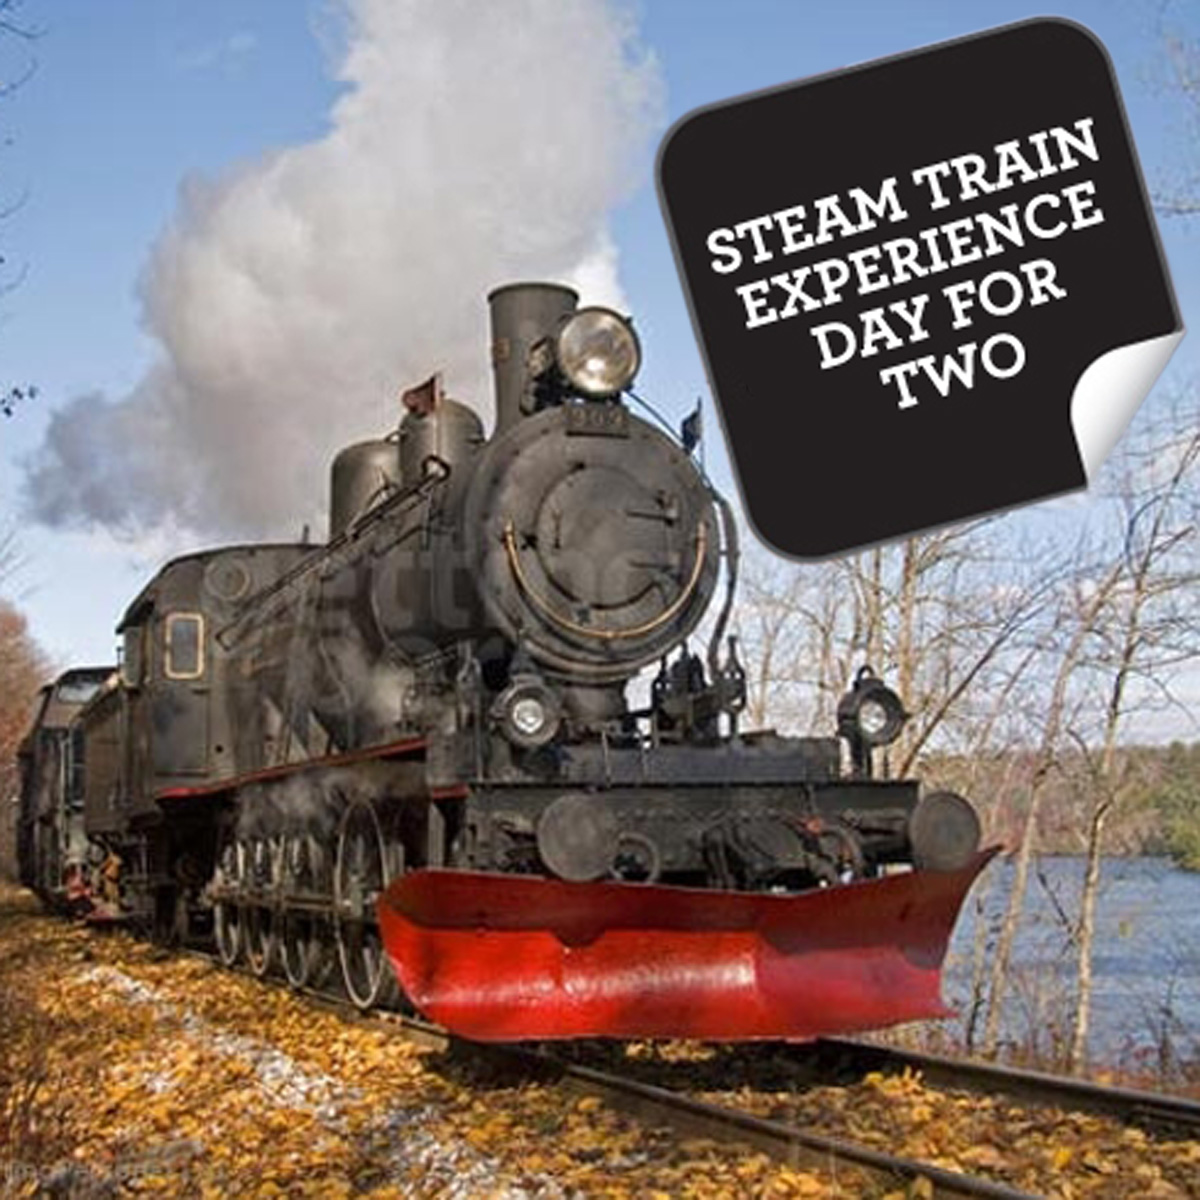 Steam Train Experience Day For Two